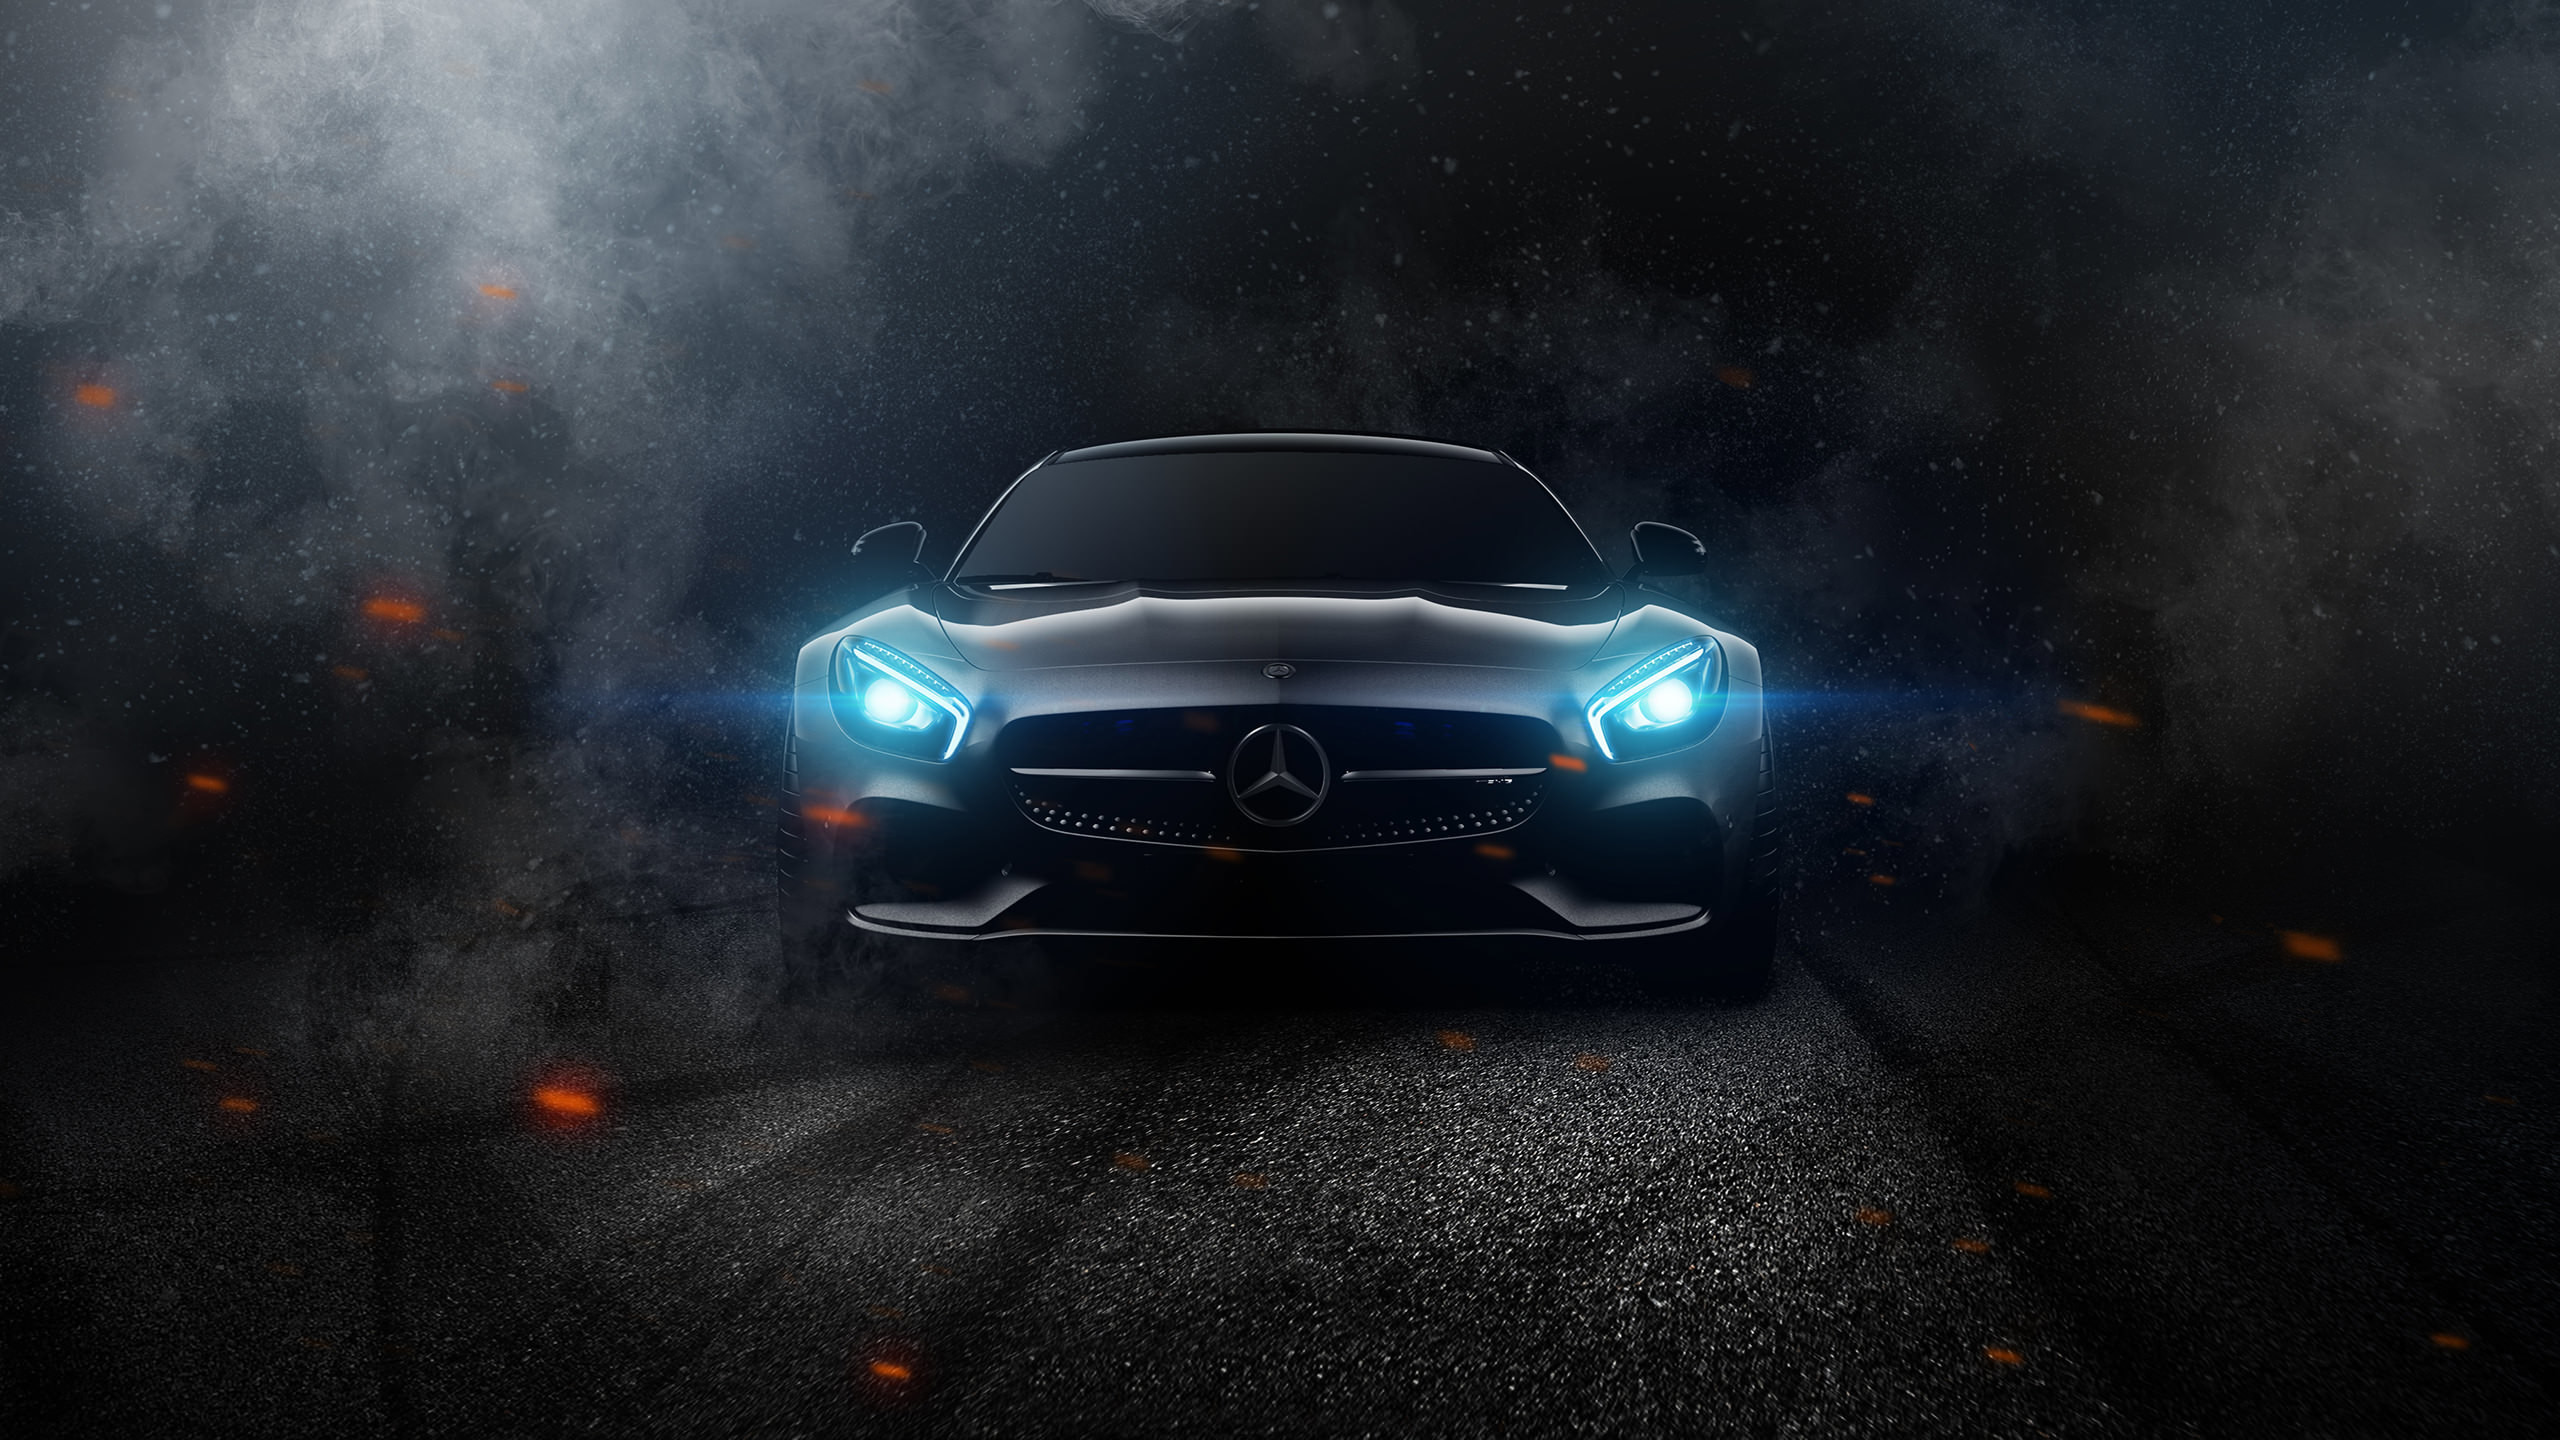 2560x1440 Mercedes Benz Logo Wallpaper Picture To Download Wallpaper